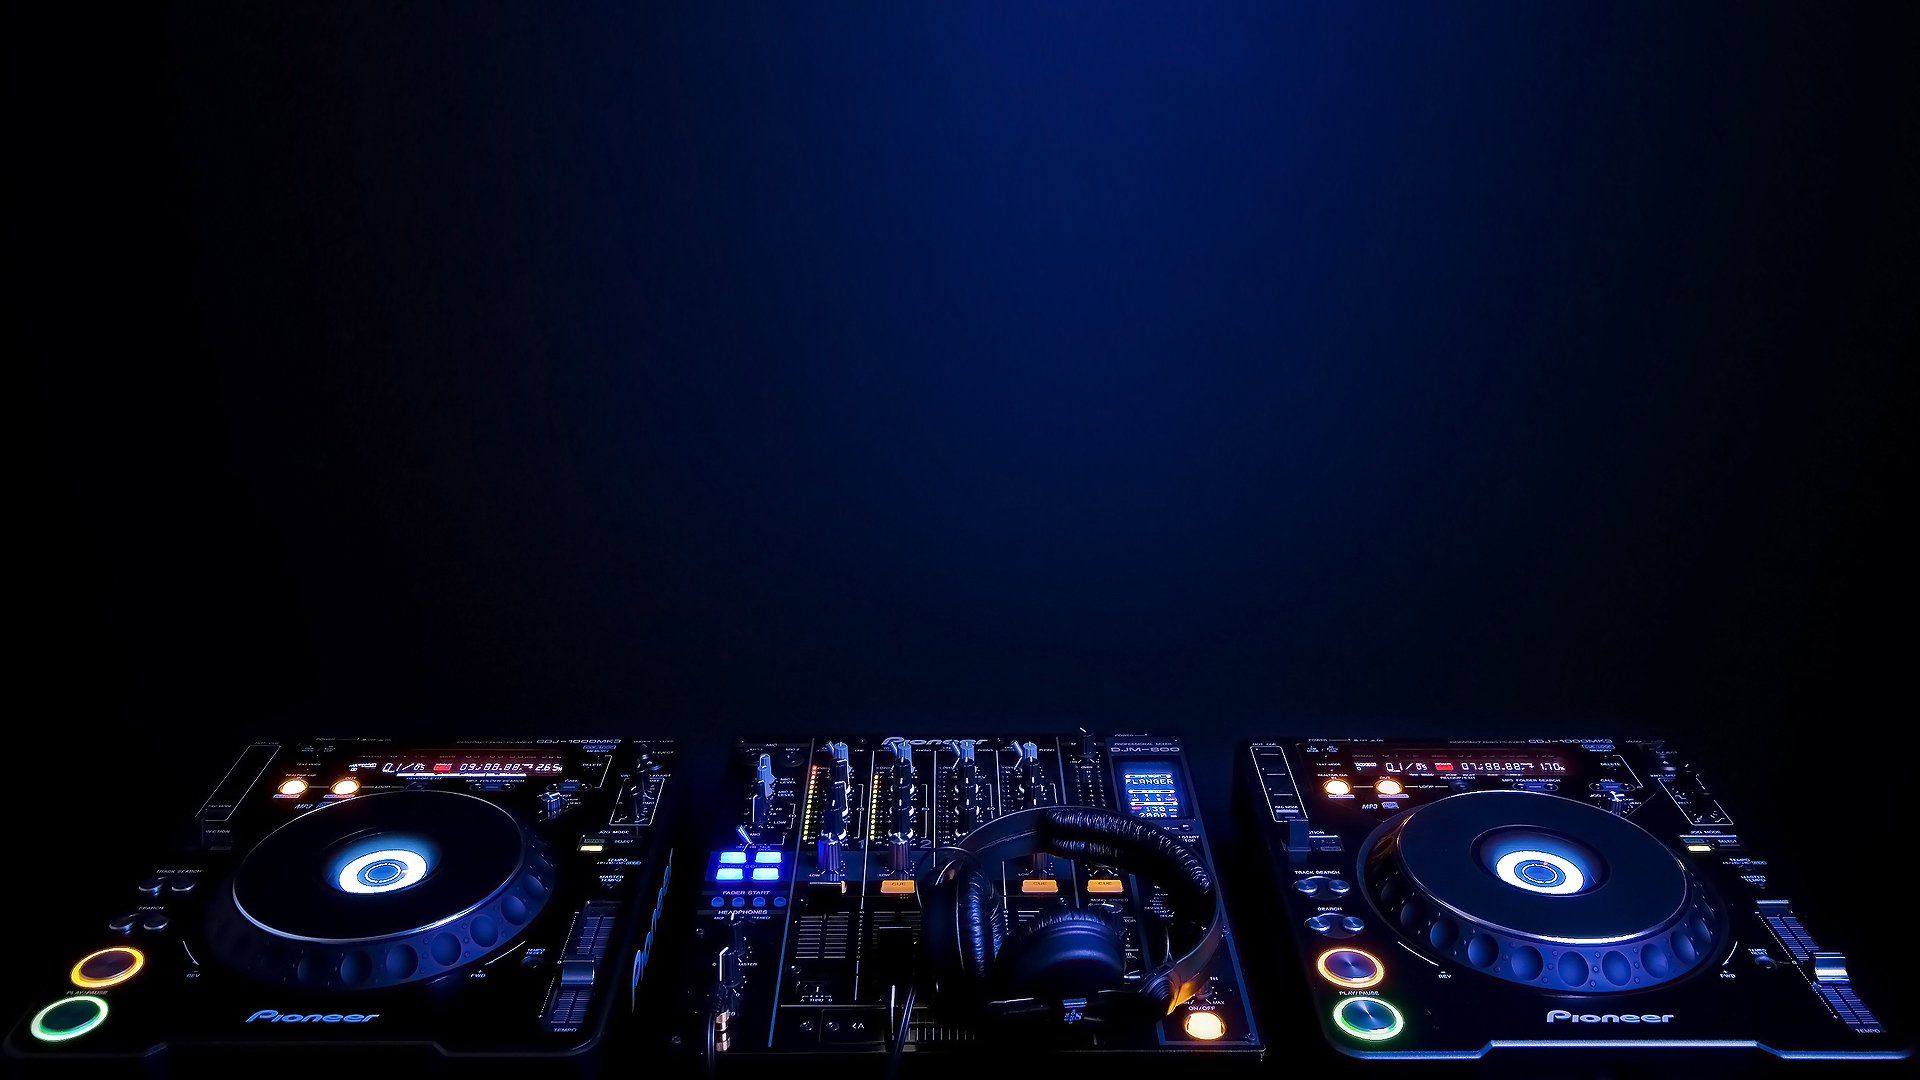 109 Dj Hd Wallpapers And Background Images Download For Free On All